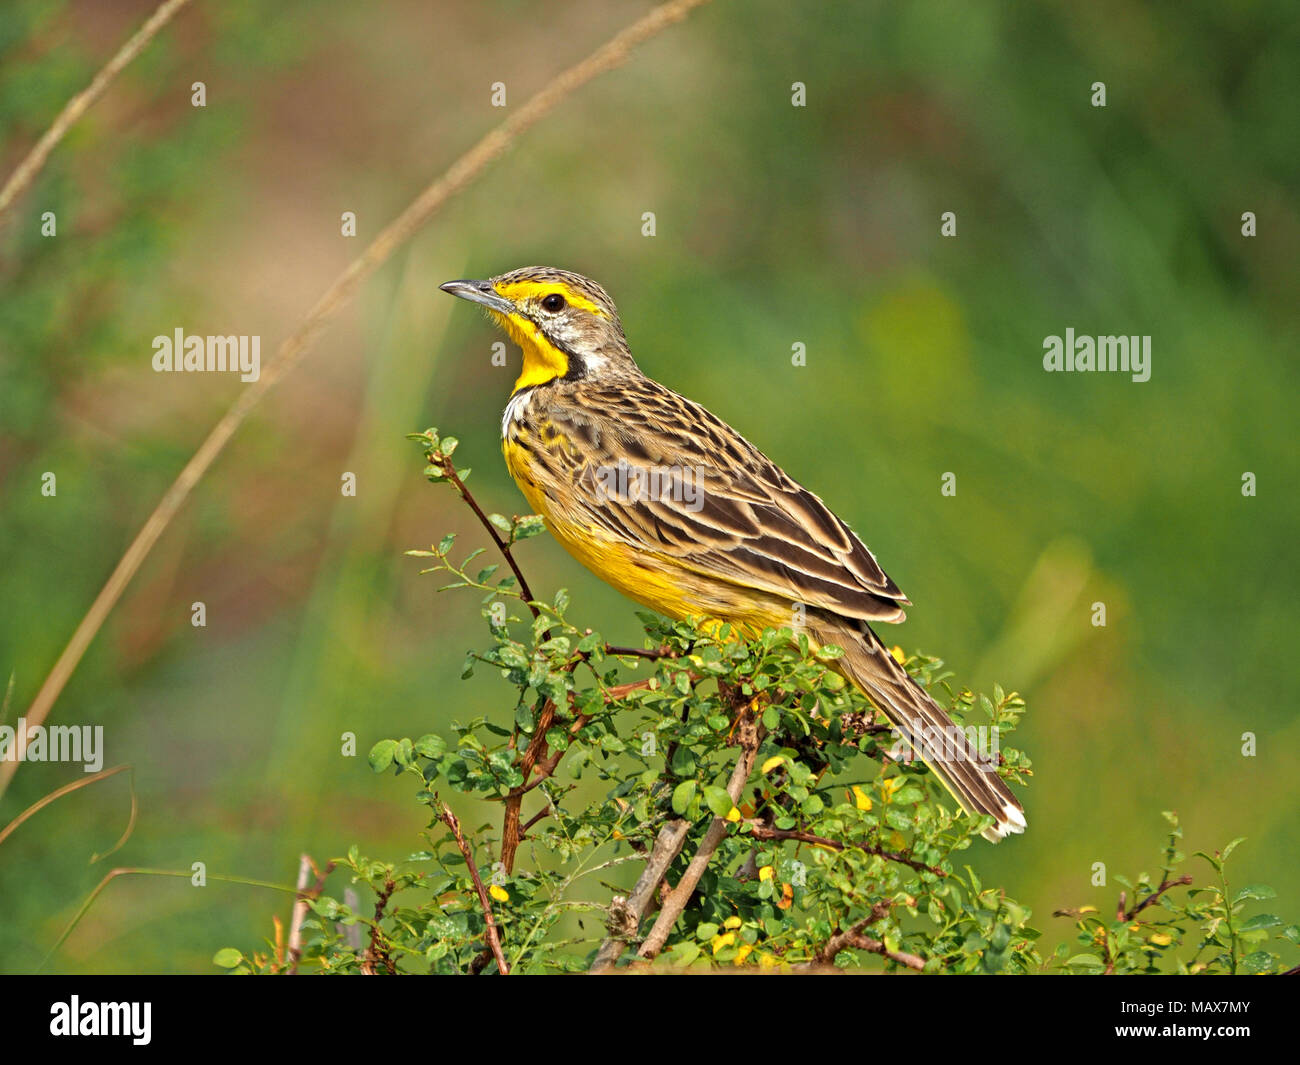 Yellow-throated Longclaw  (Macronyx croceus) with catchlight in the eye perched on a low bush in the grasslands of the Masai Mara, Kenya, Africa - Stock Image